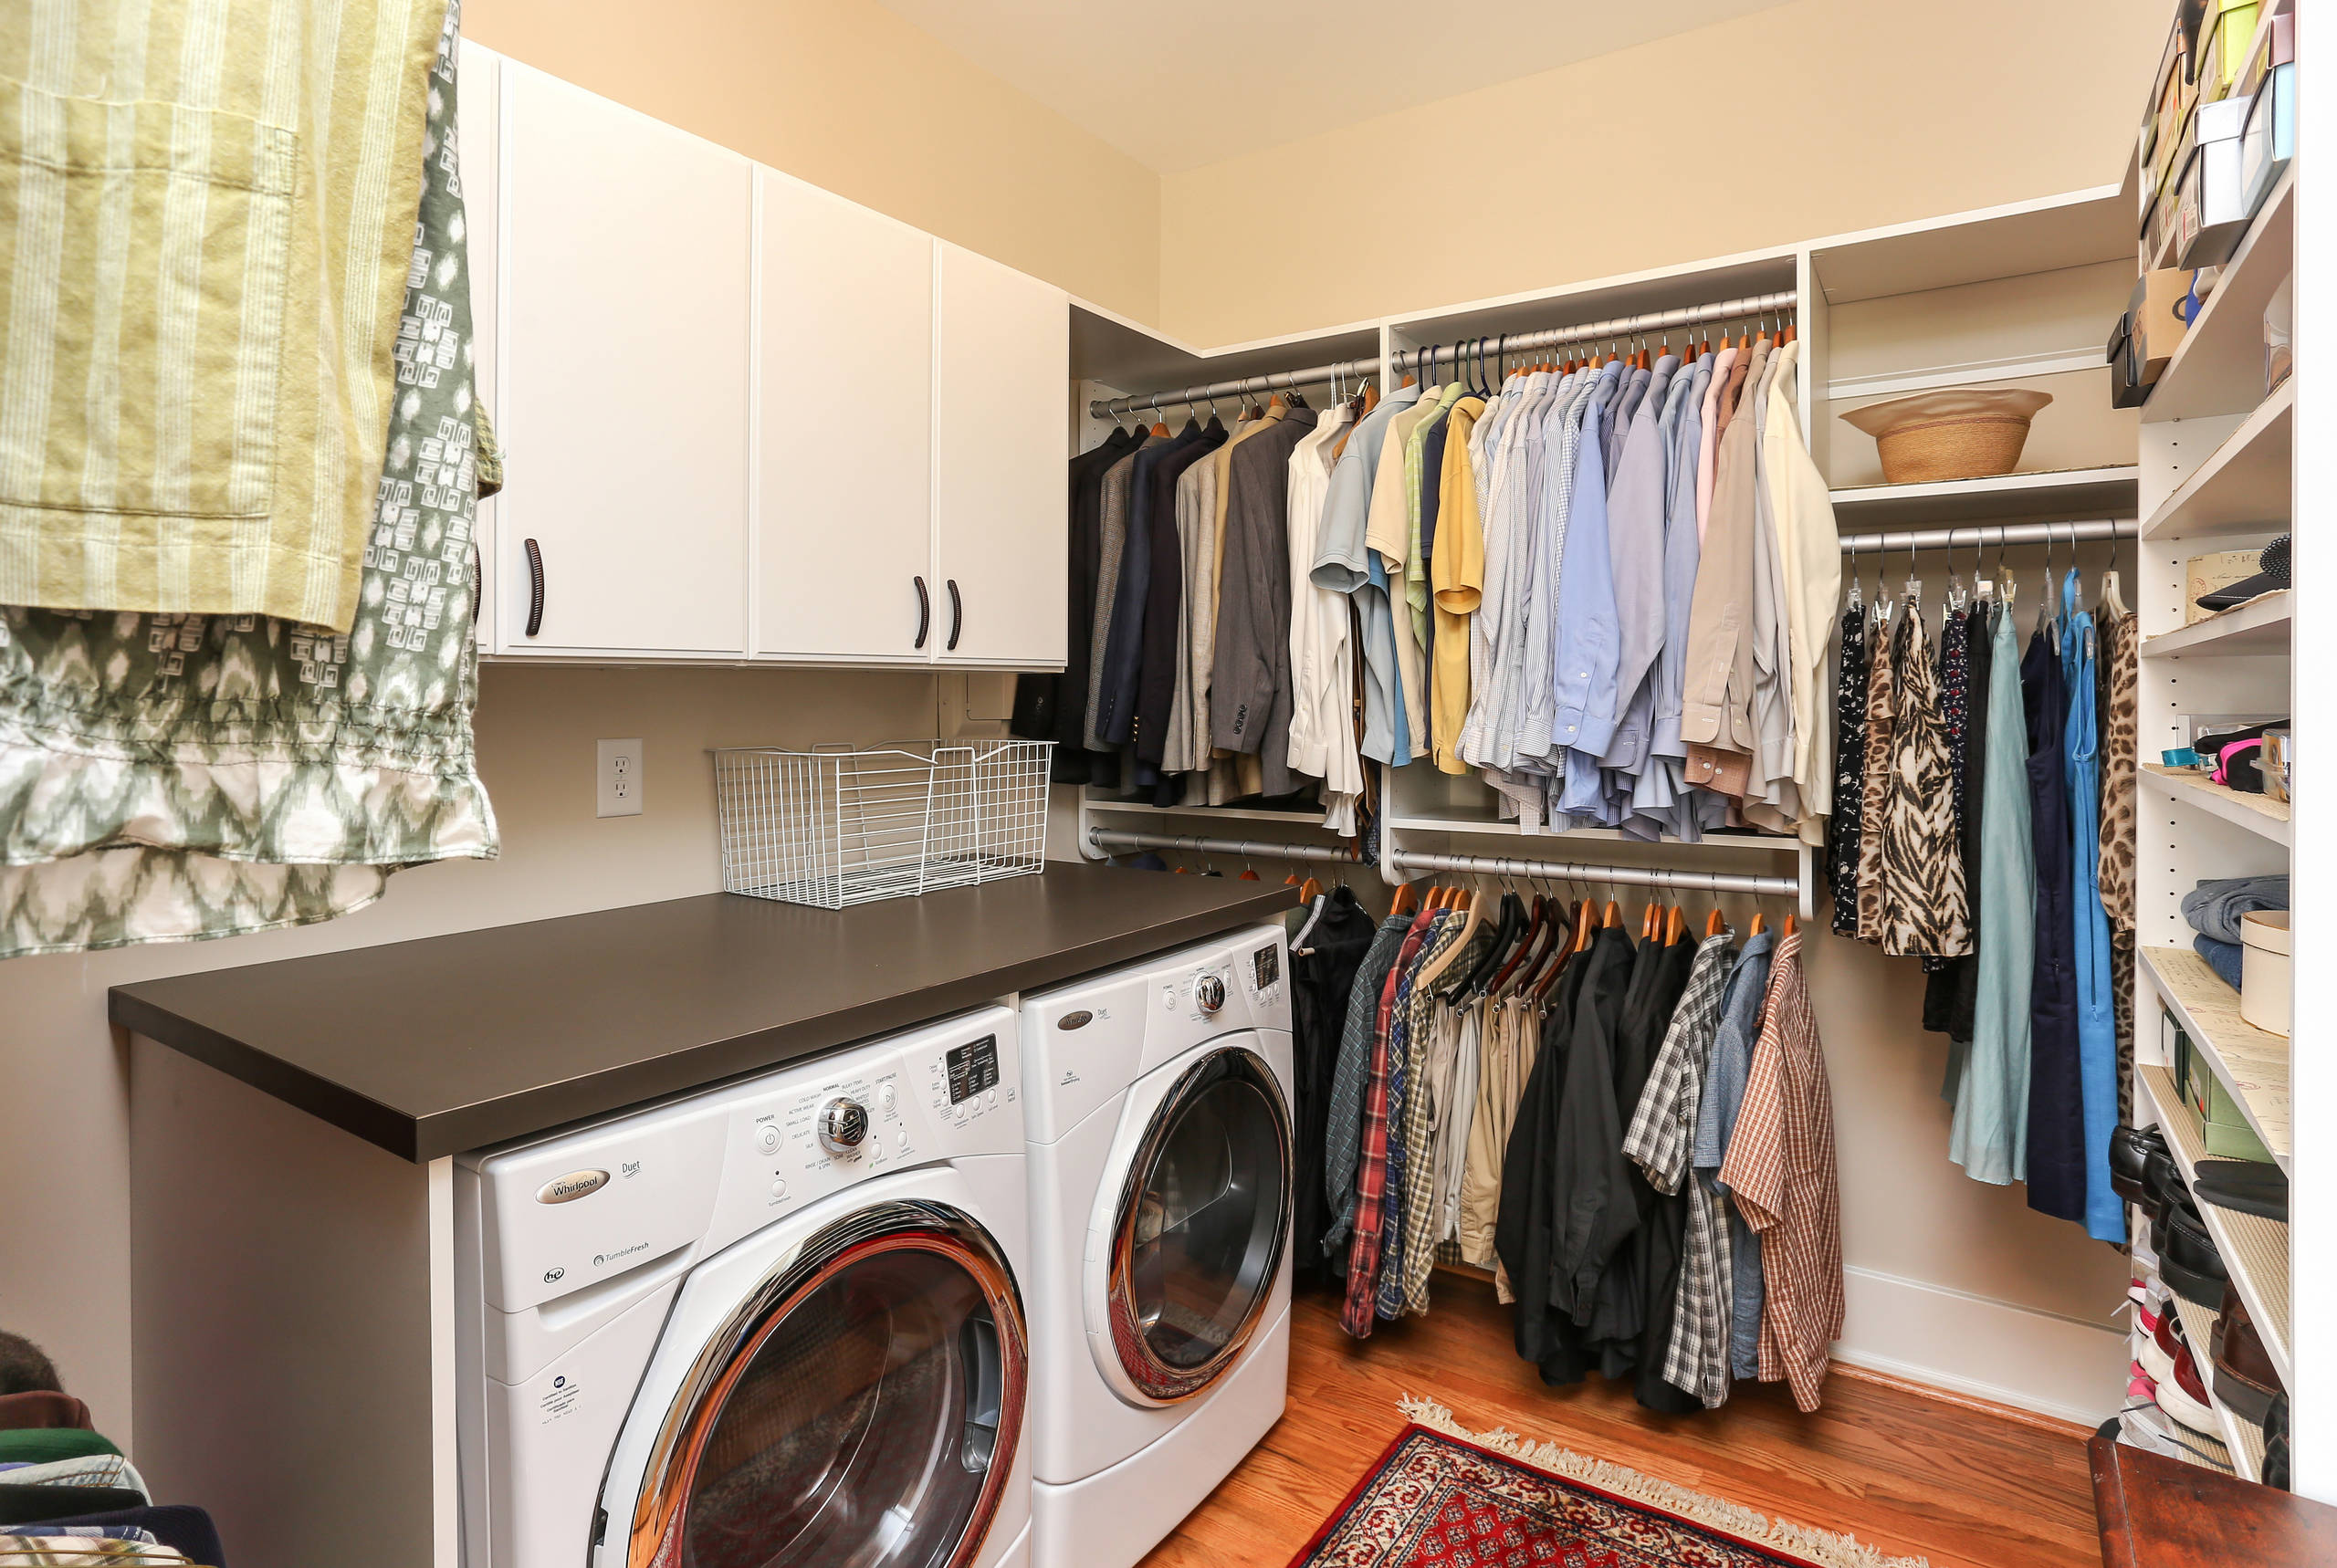 12+ Washer And Dryer In Master Closet Images